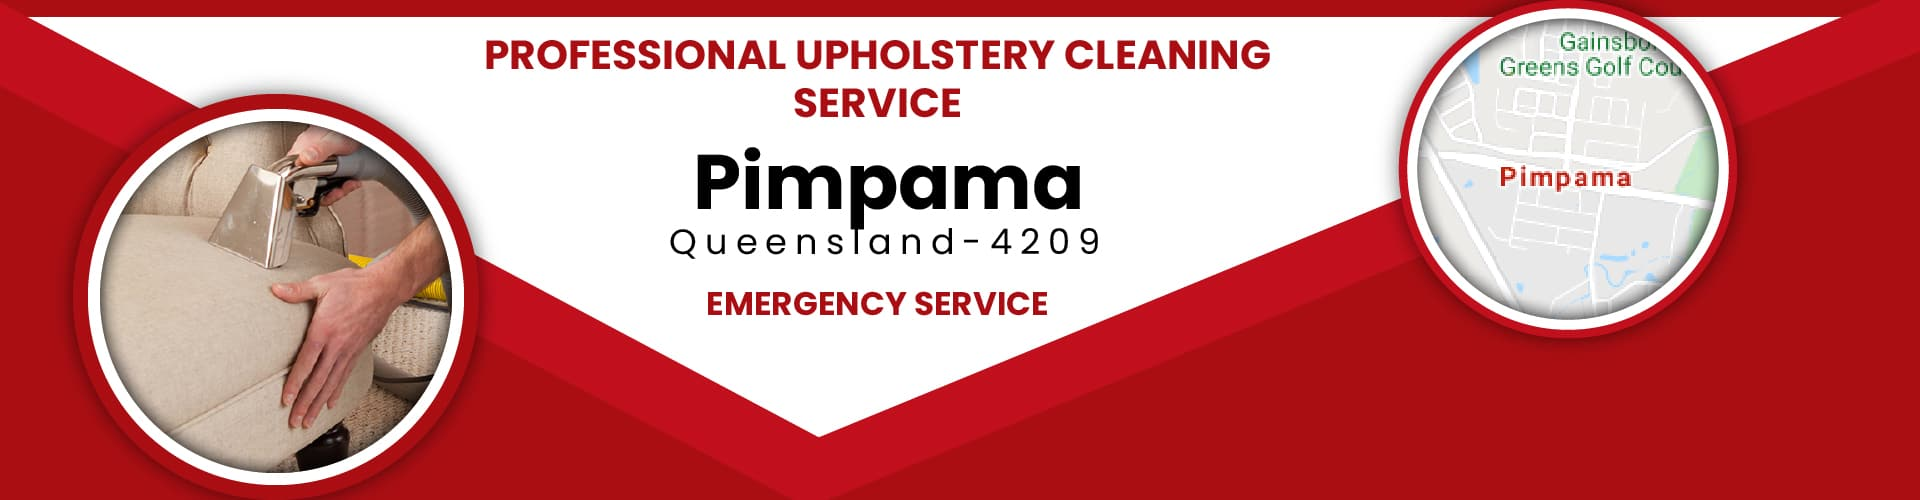 Upholstery Cleaning Pimpama